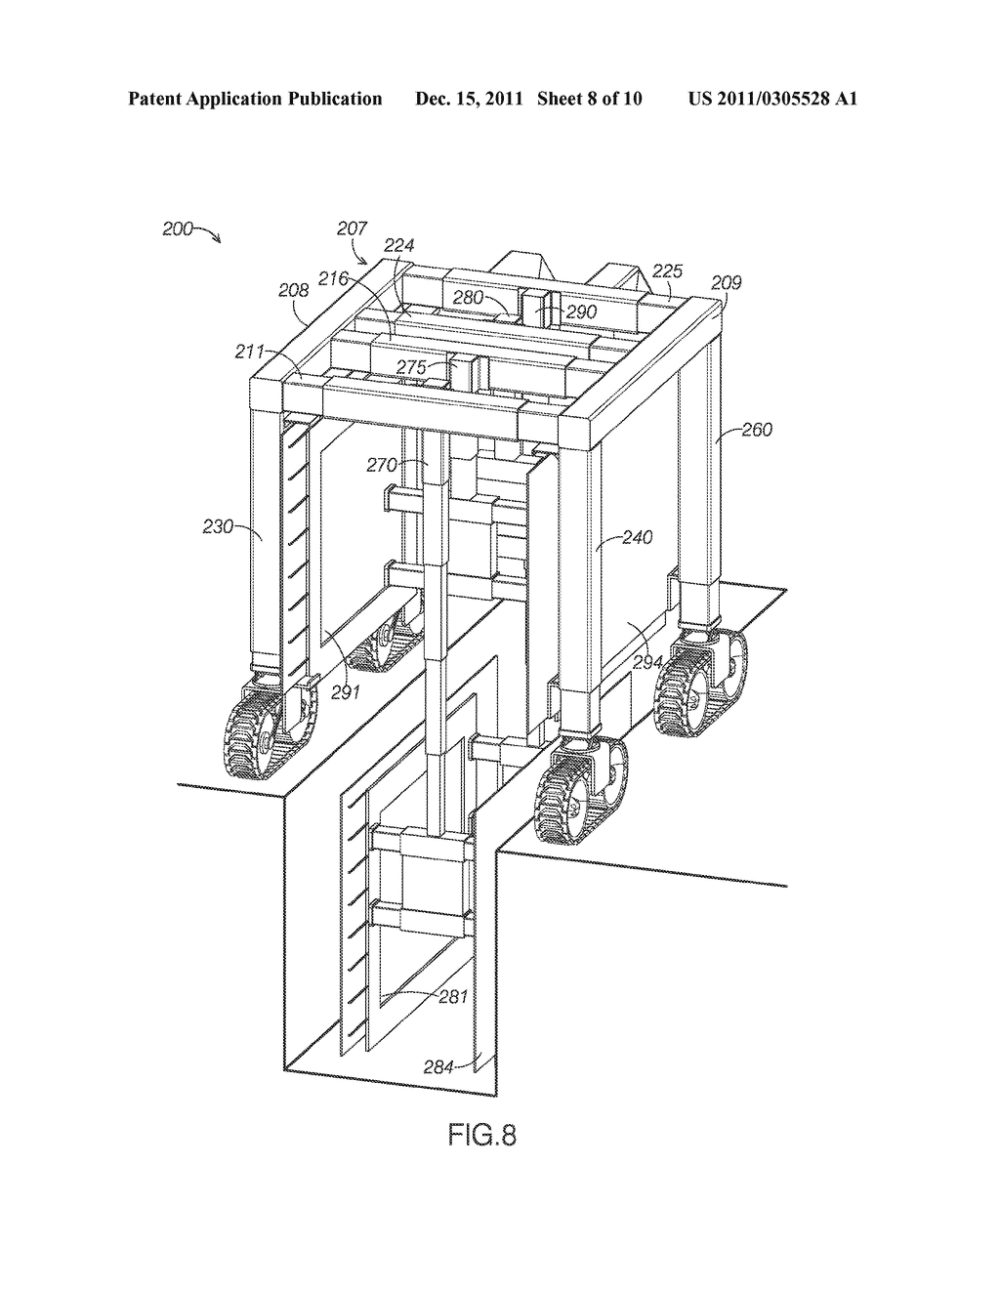 medium resolution of trench shoring apparatuses and methods diagram schematic and image 09